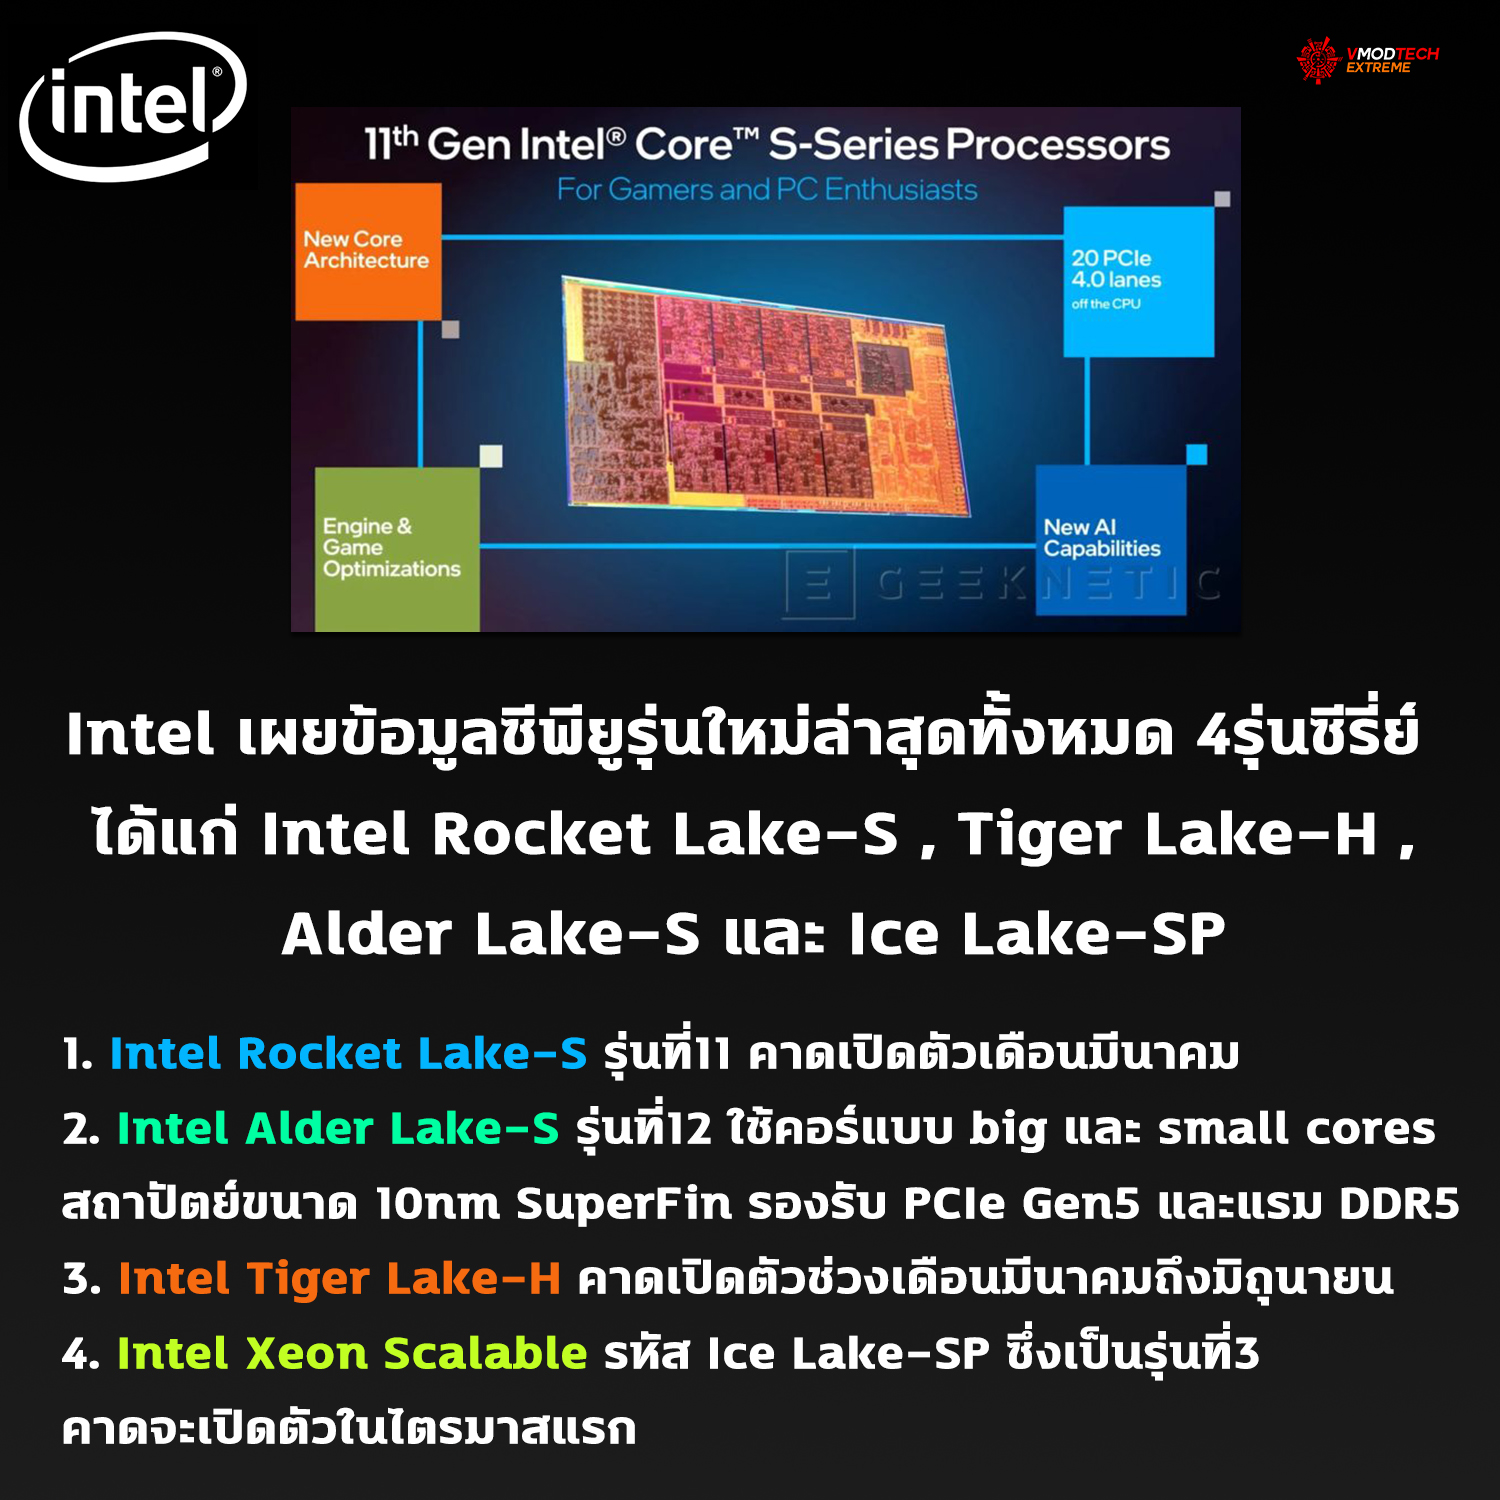 intel-intel-rocket-lake-s-tiger-lake-h-alder-lake-s-ice-lake-sp-ces-2021